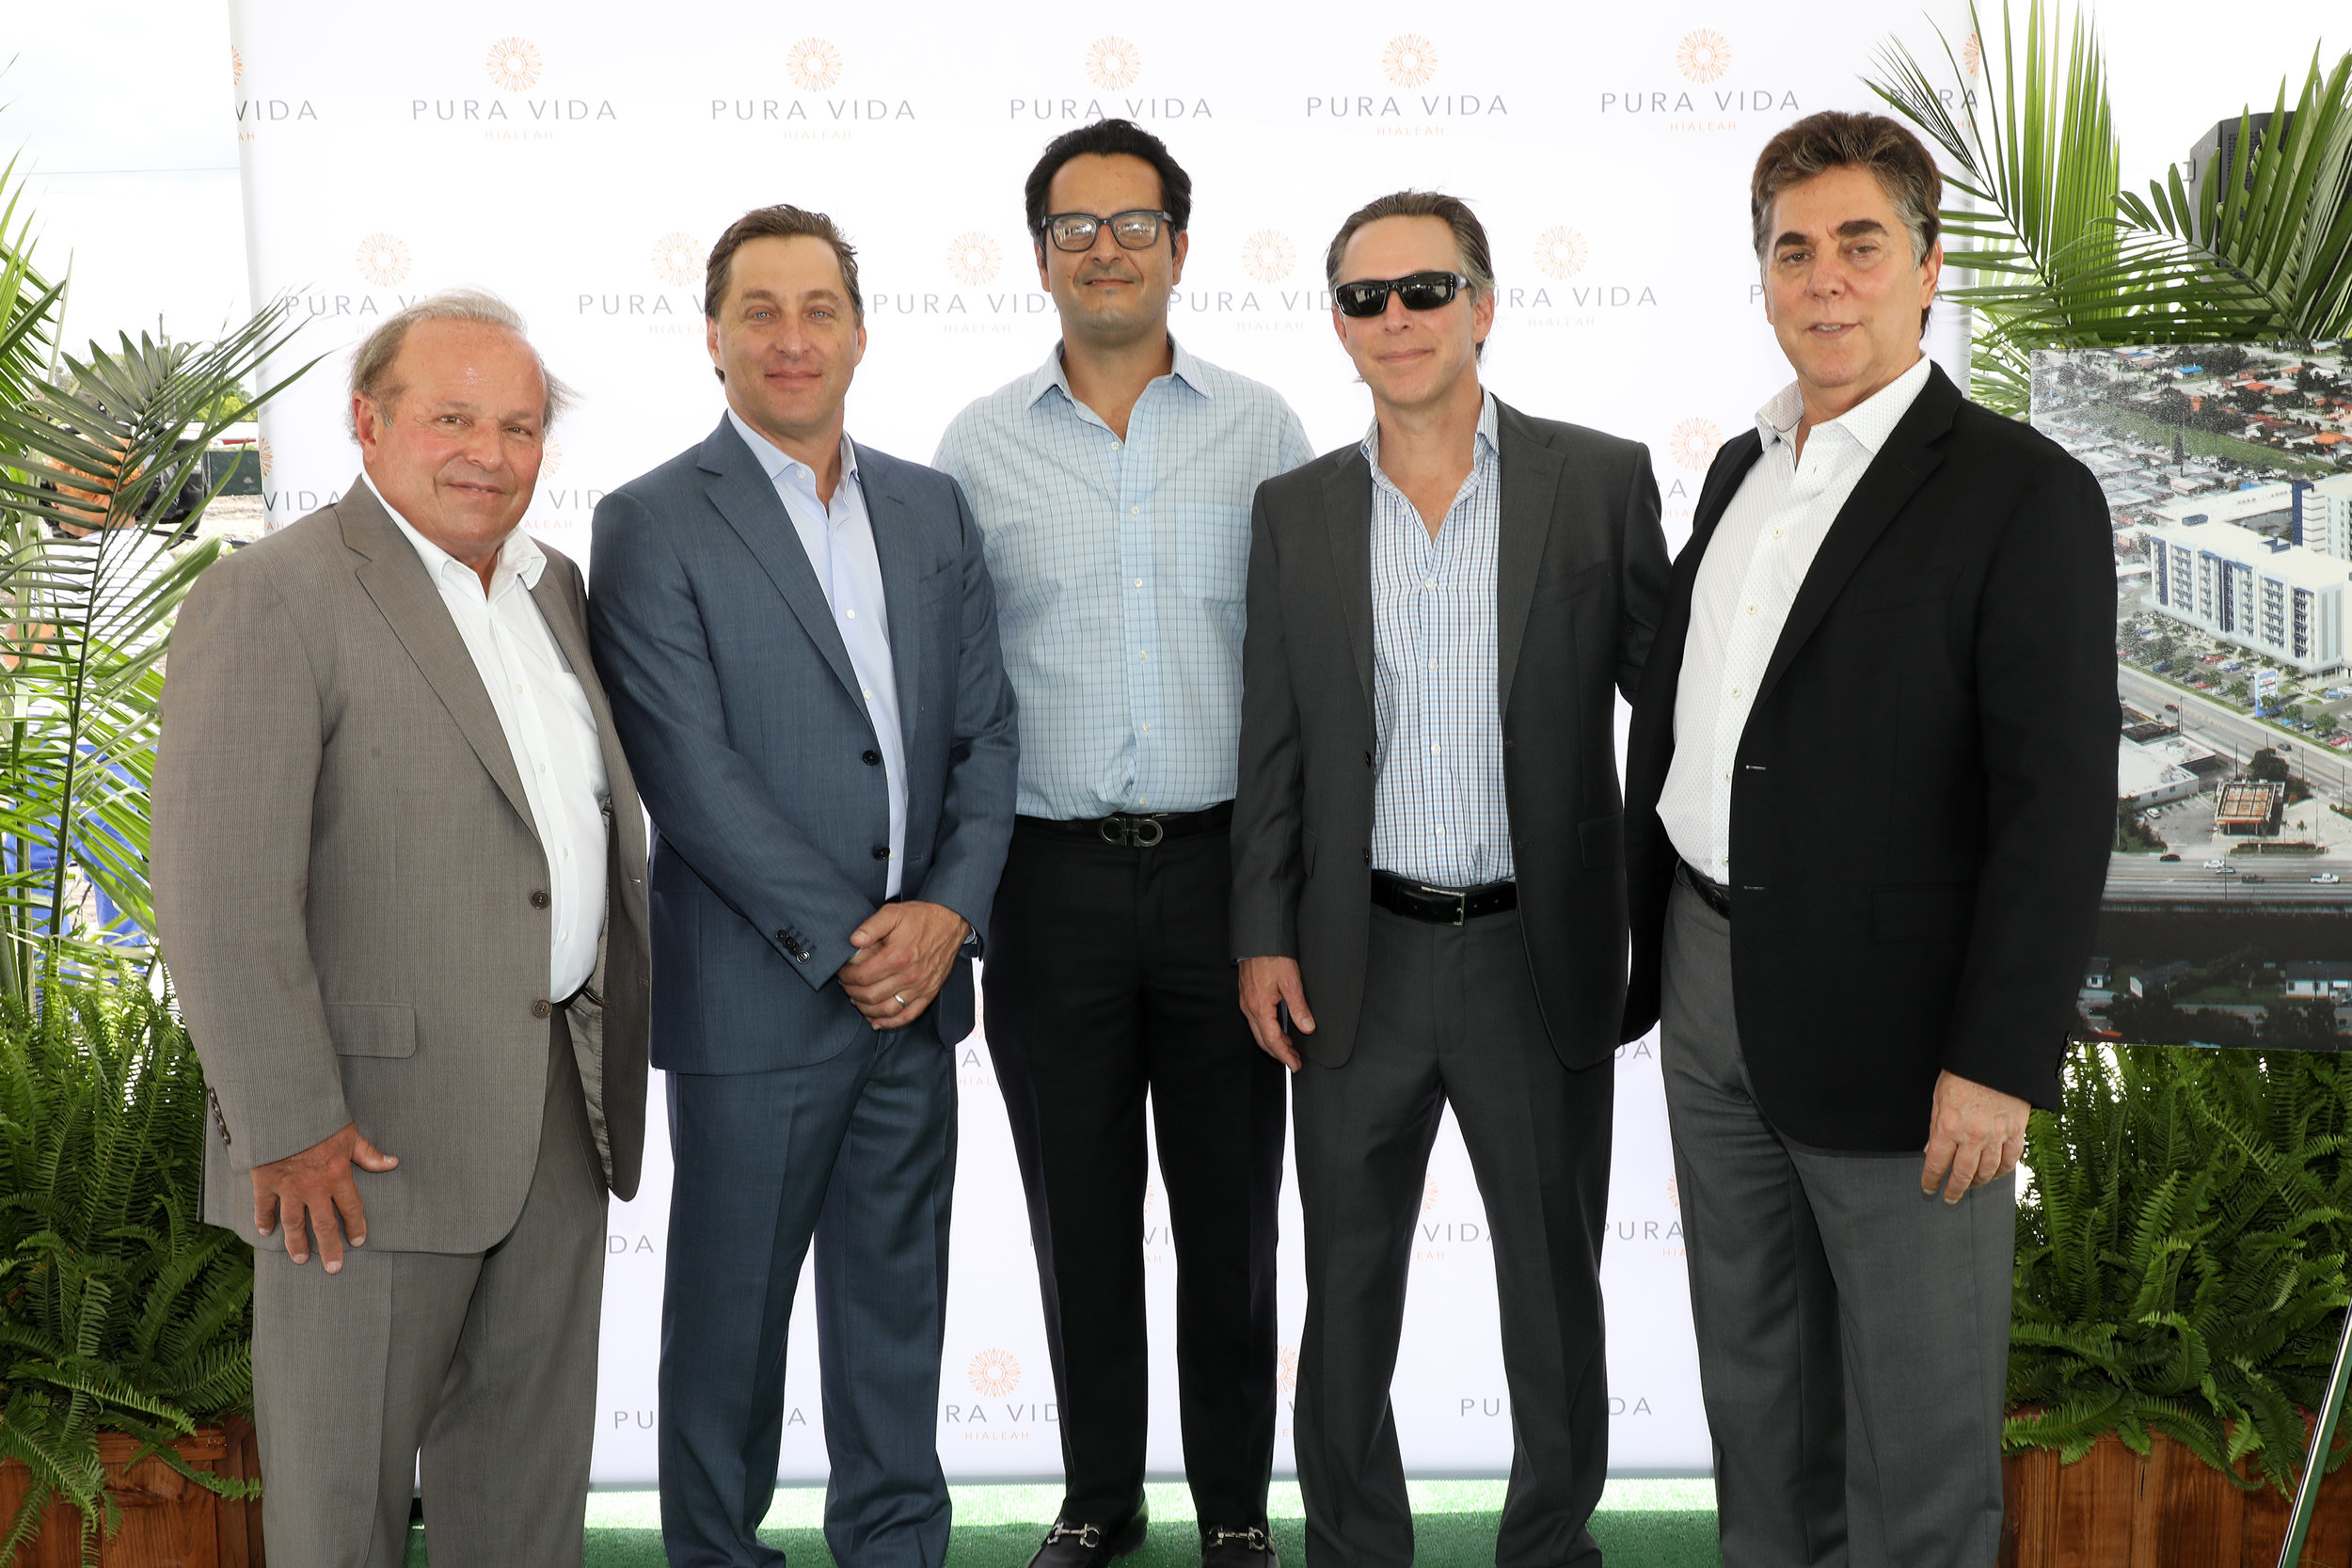 From L-R: Michael Wohl, Principal of Coral Rock Development Group; David Brown, Principal of Coral Rock Development Group; Oscar Rodriguez, Arena Capital Holdings; Victor Brown, Principal of Coral Rock Development Group; Stephen A. Blumenthal, Principal of Coral Rock Development Group